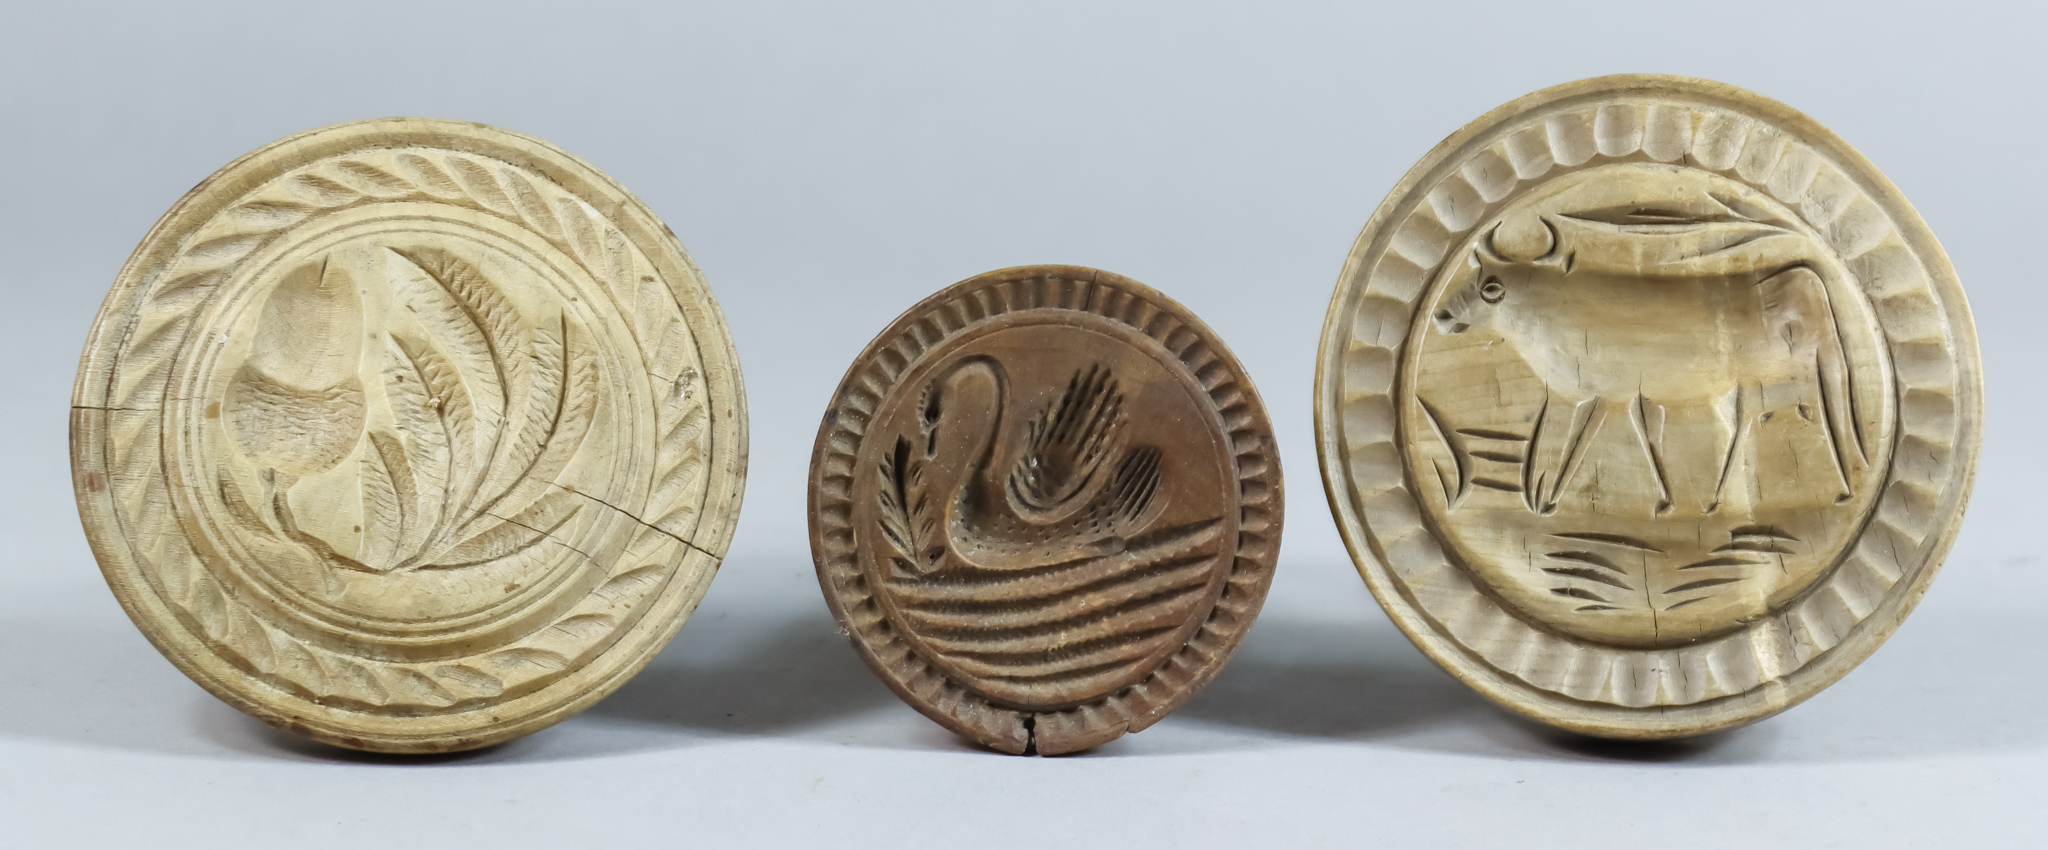 Three Carved Wood Butter Stamps, Victorian, carved with an acorn and leaves, 3.75ins diameter, a